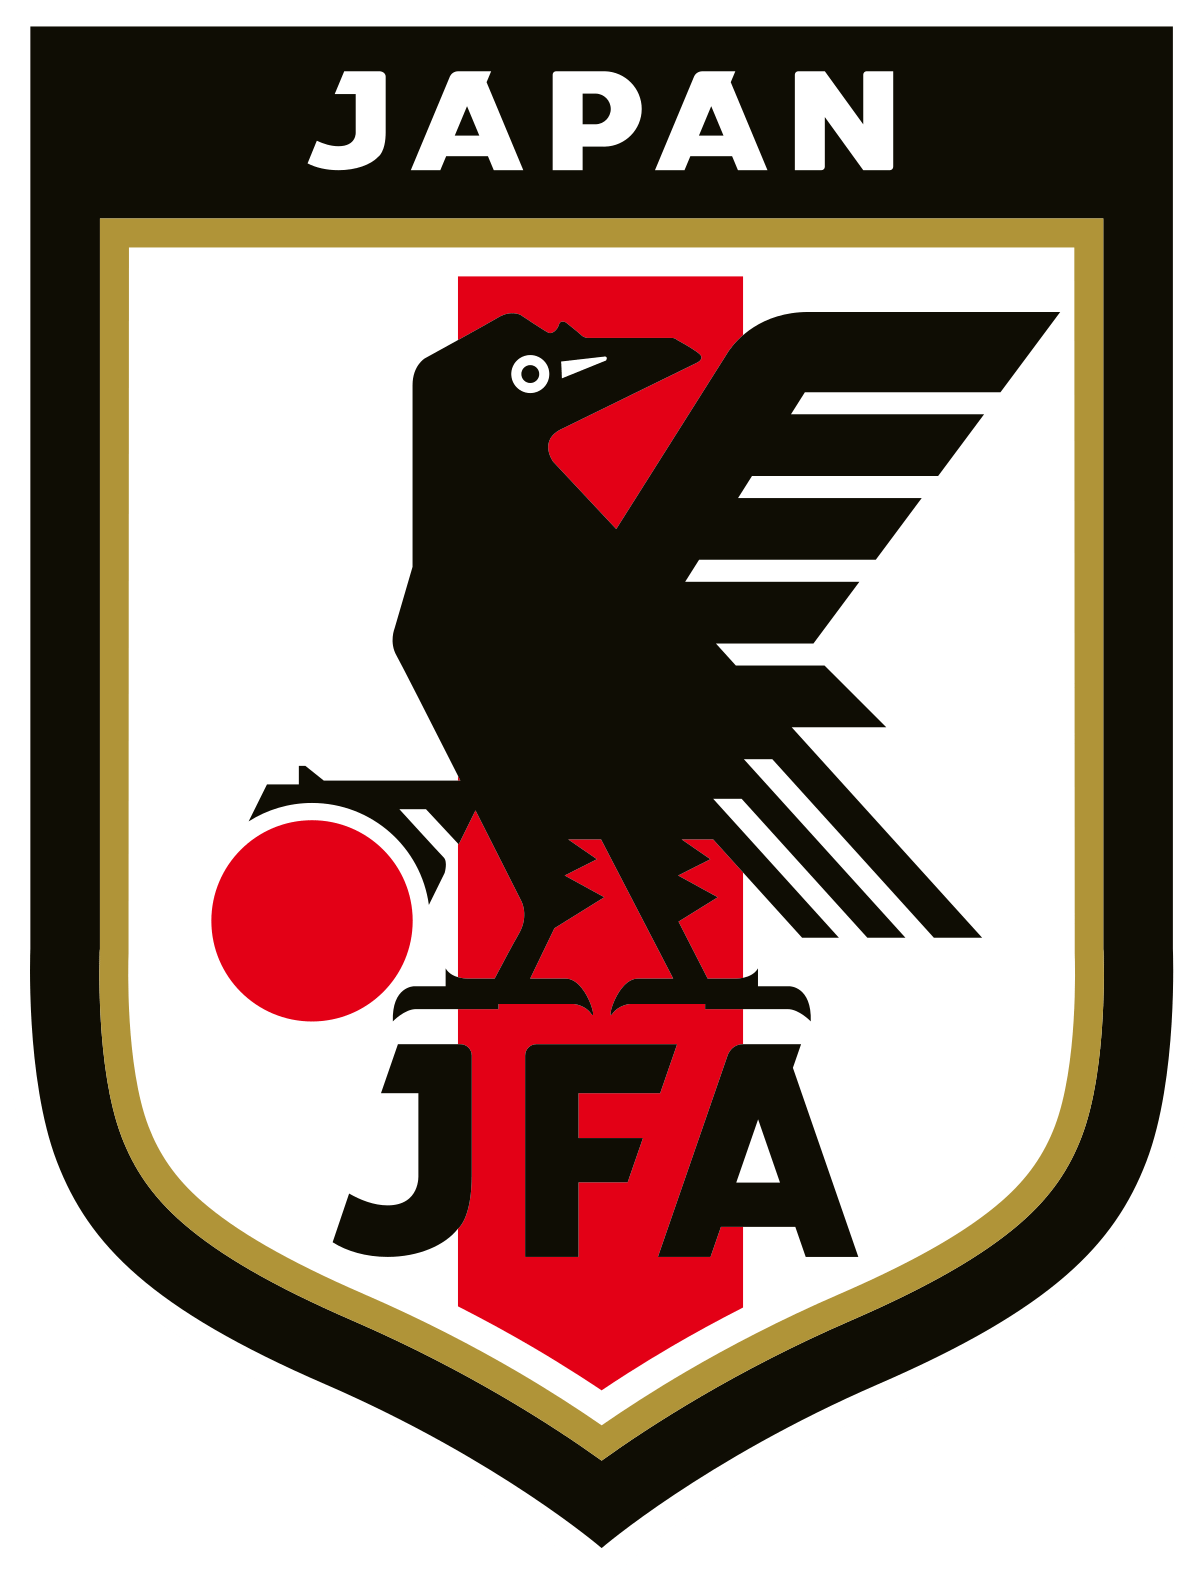 Japan National Team Crest